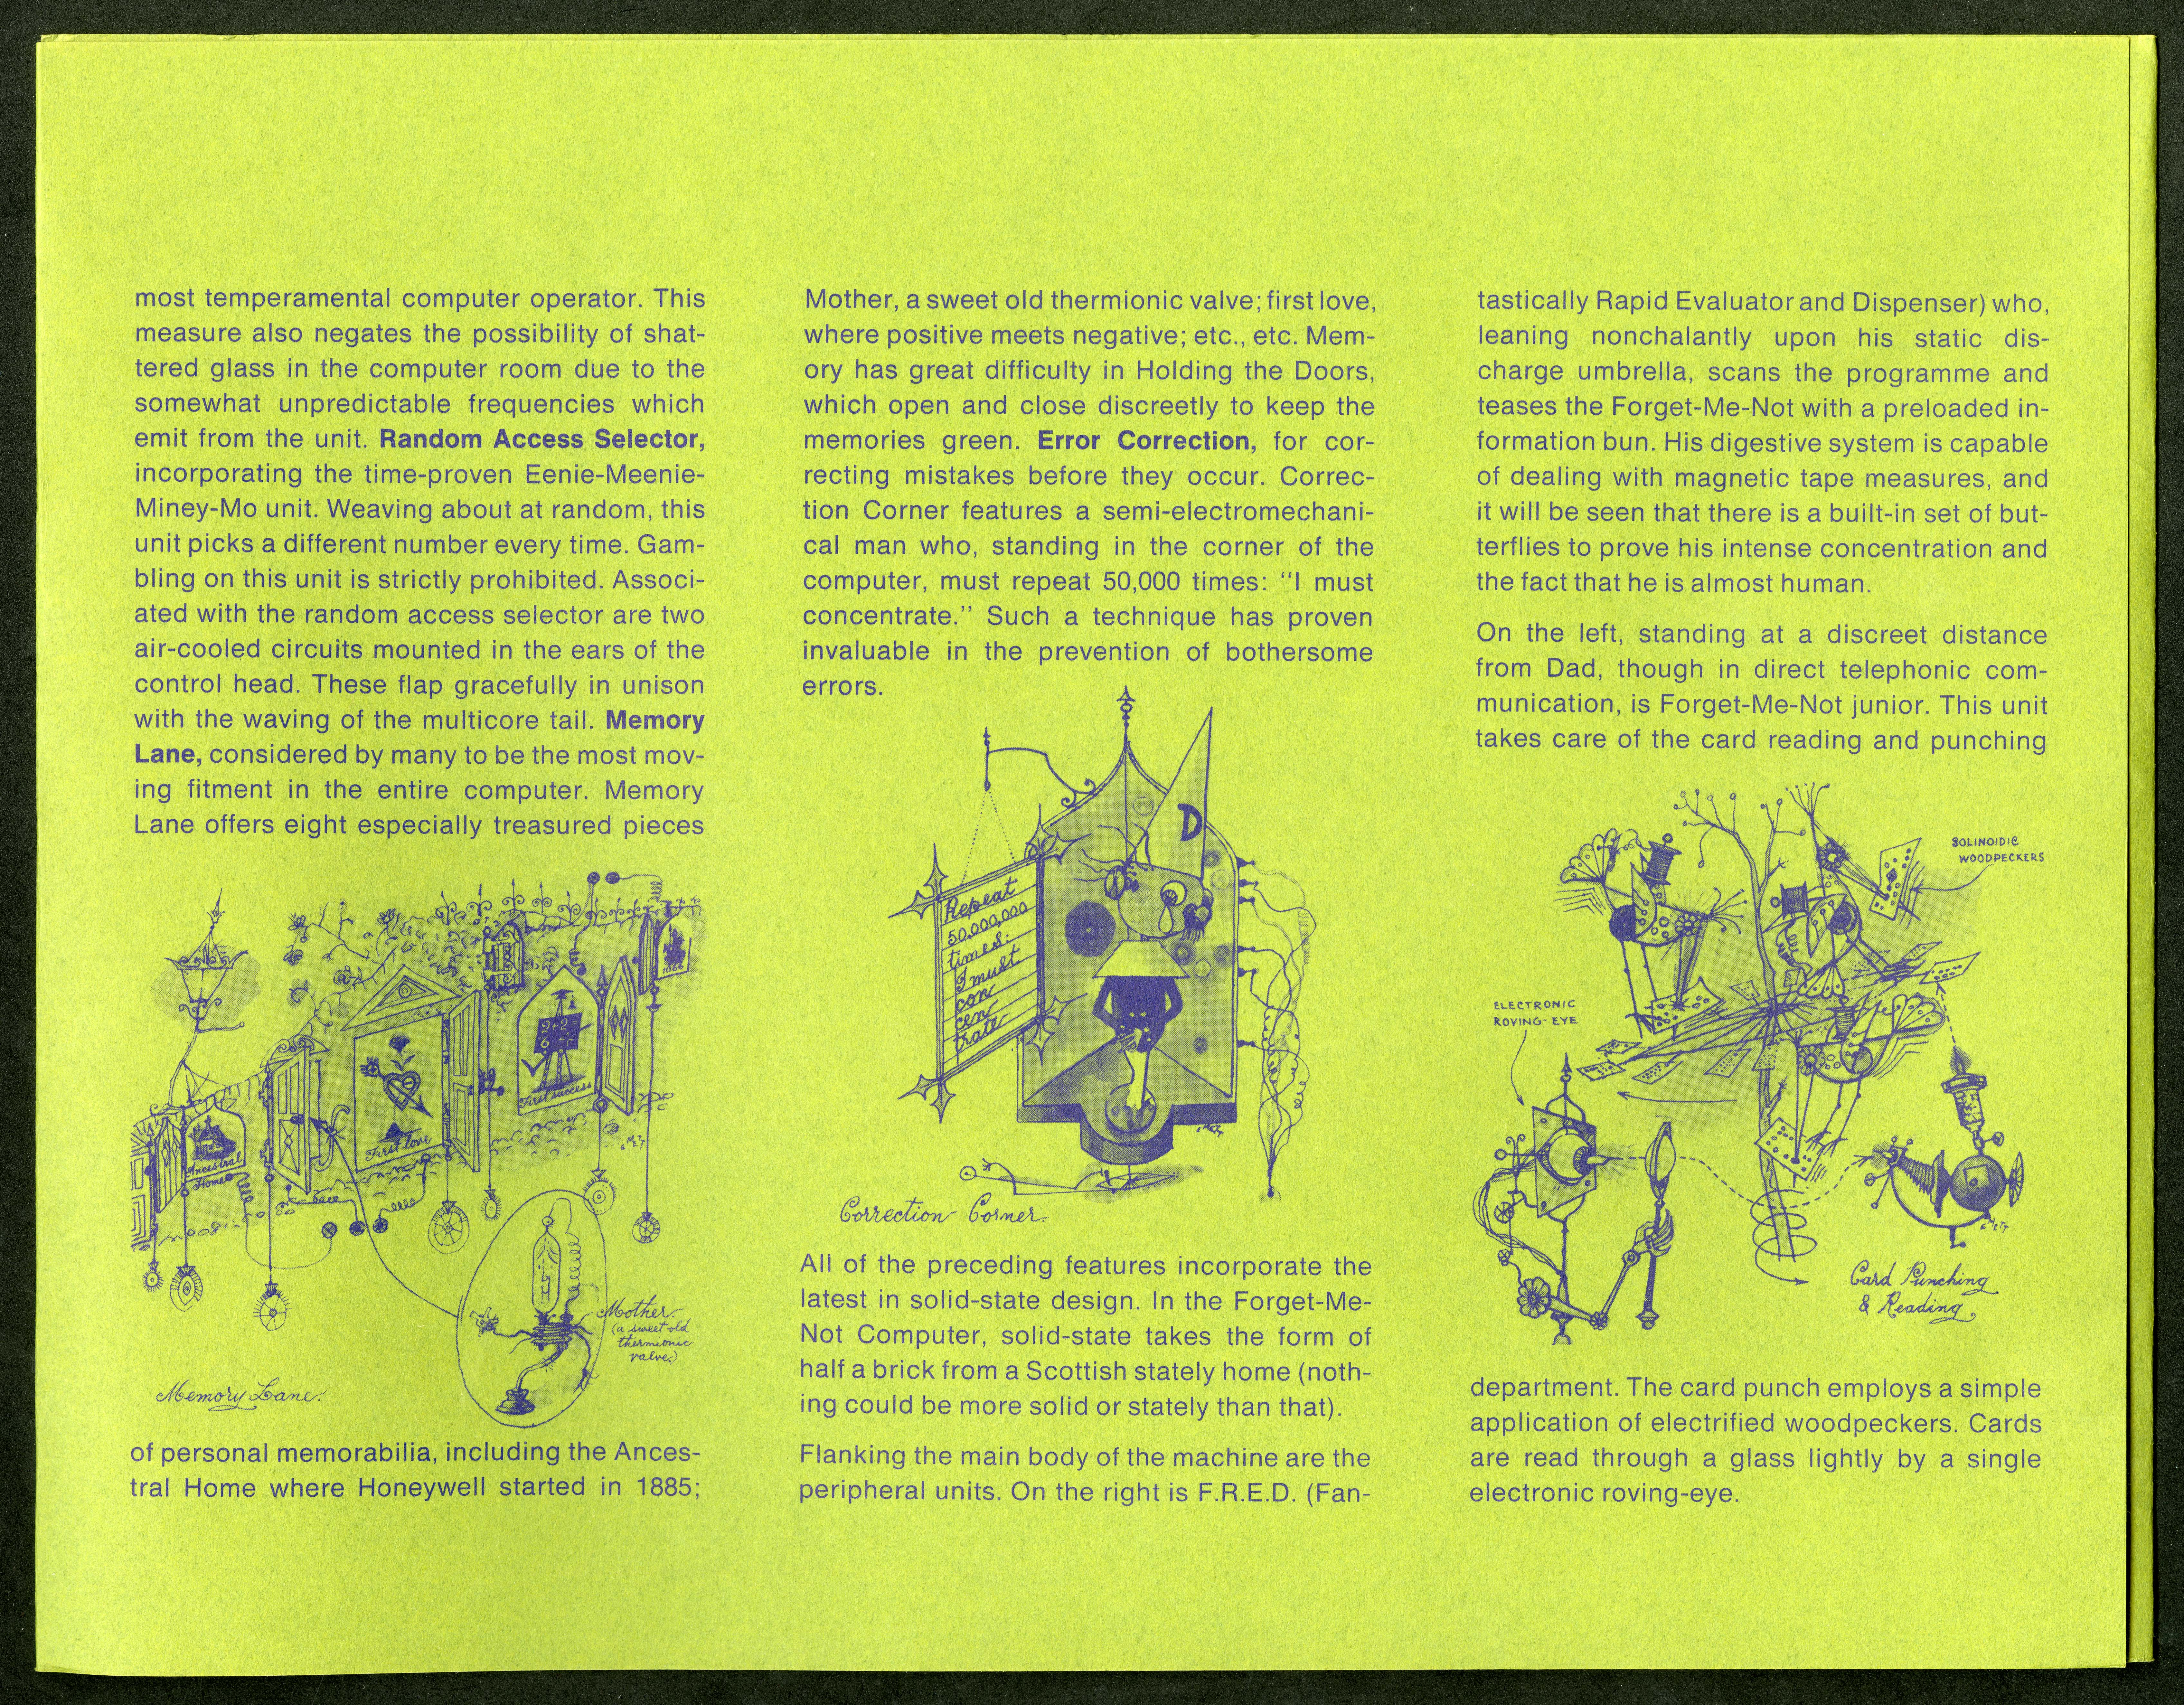 Scan of the inside of a lime green brochure with a drawings of cartoon versions of computers inline